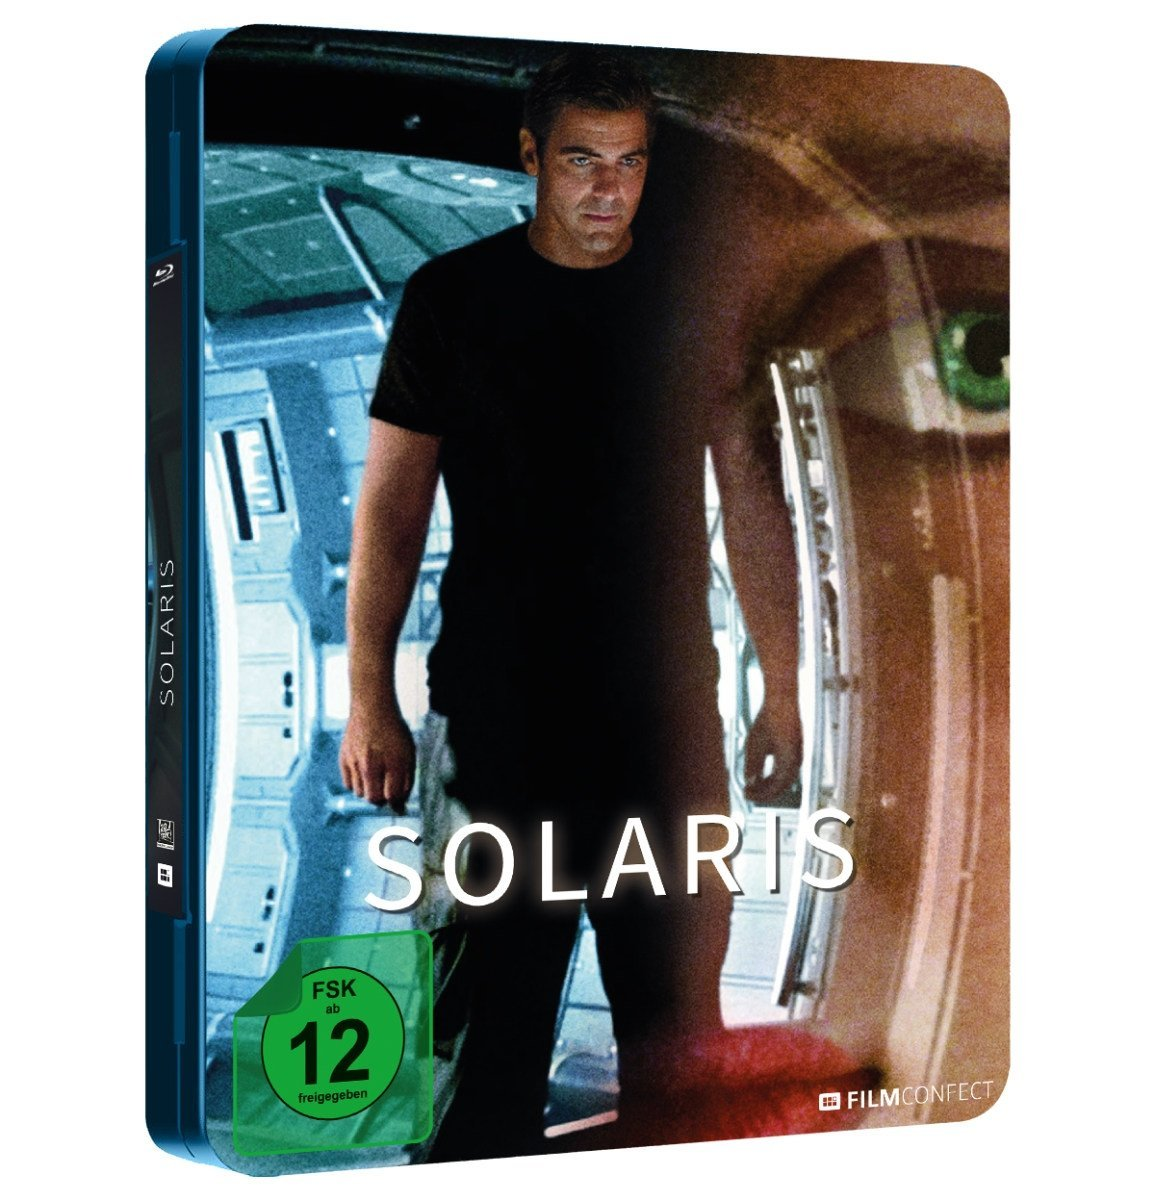 Solaris futurepak